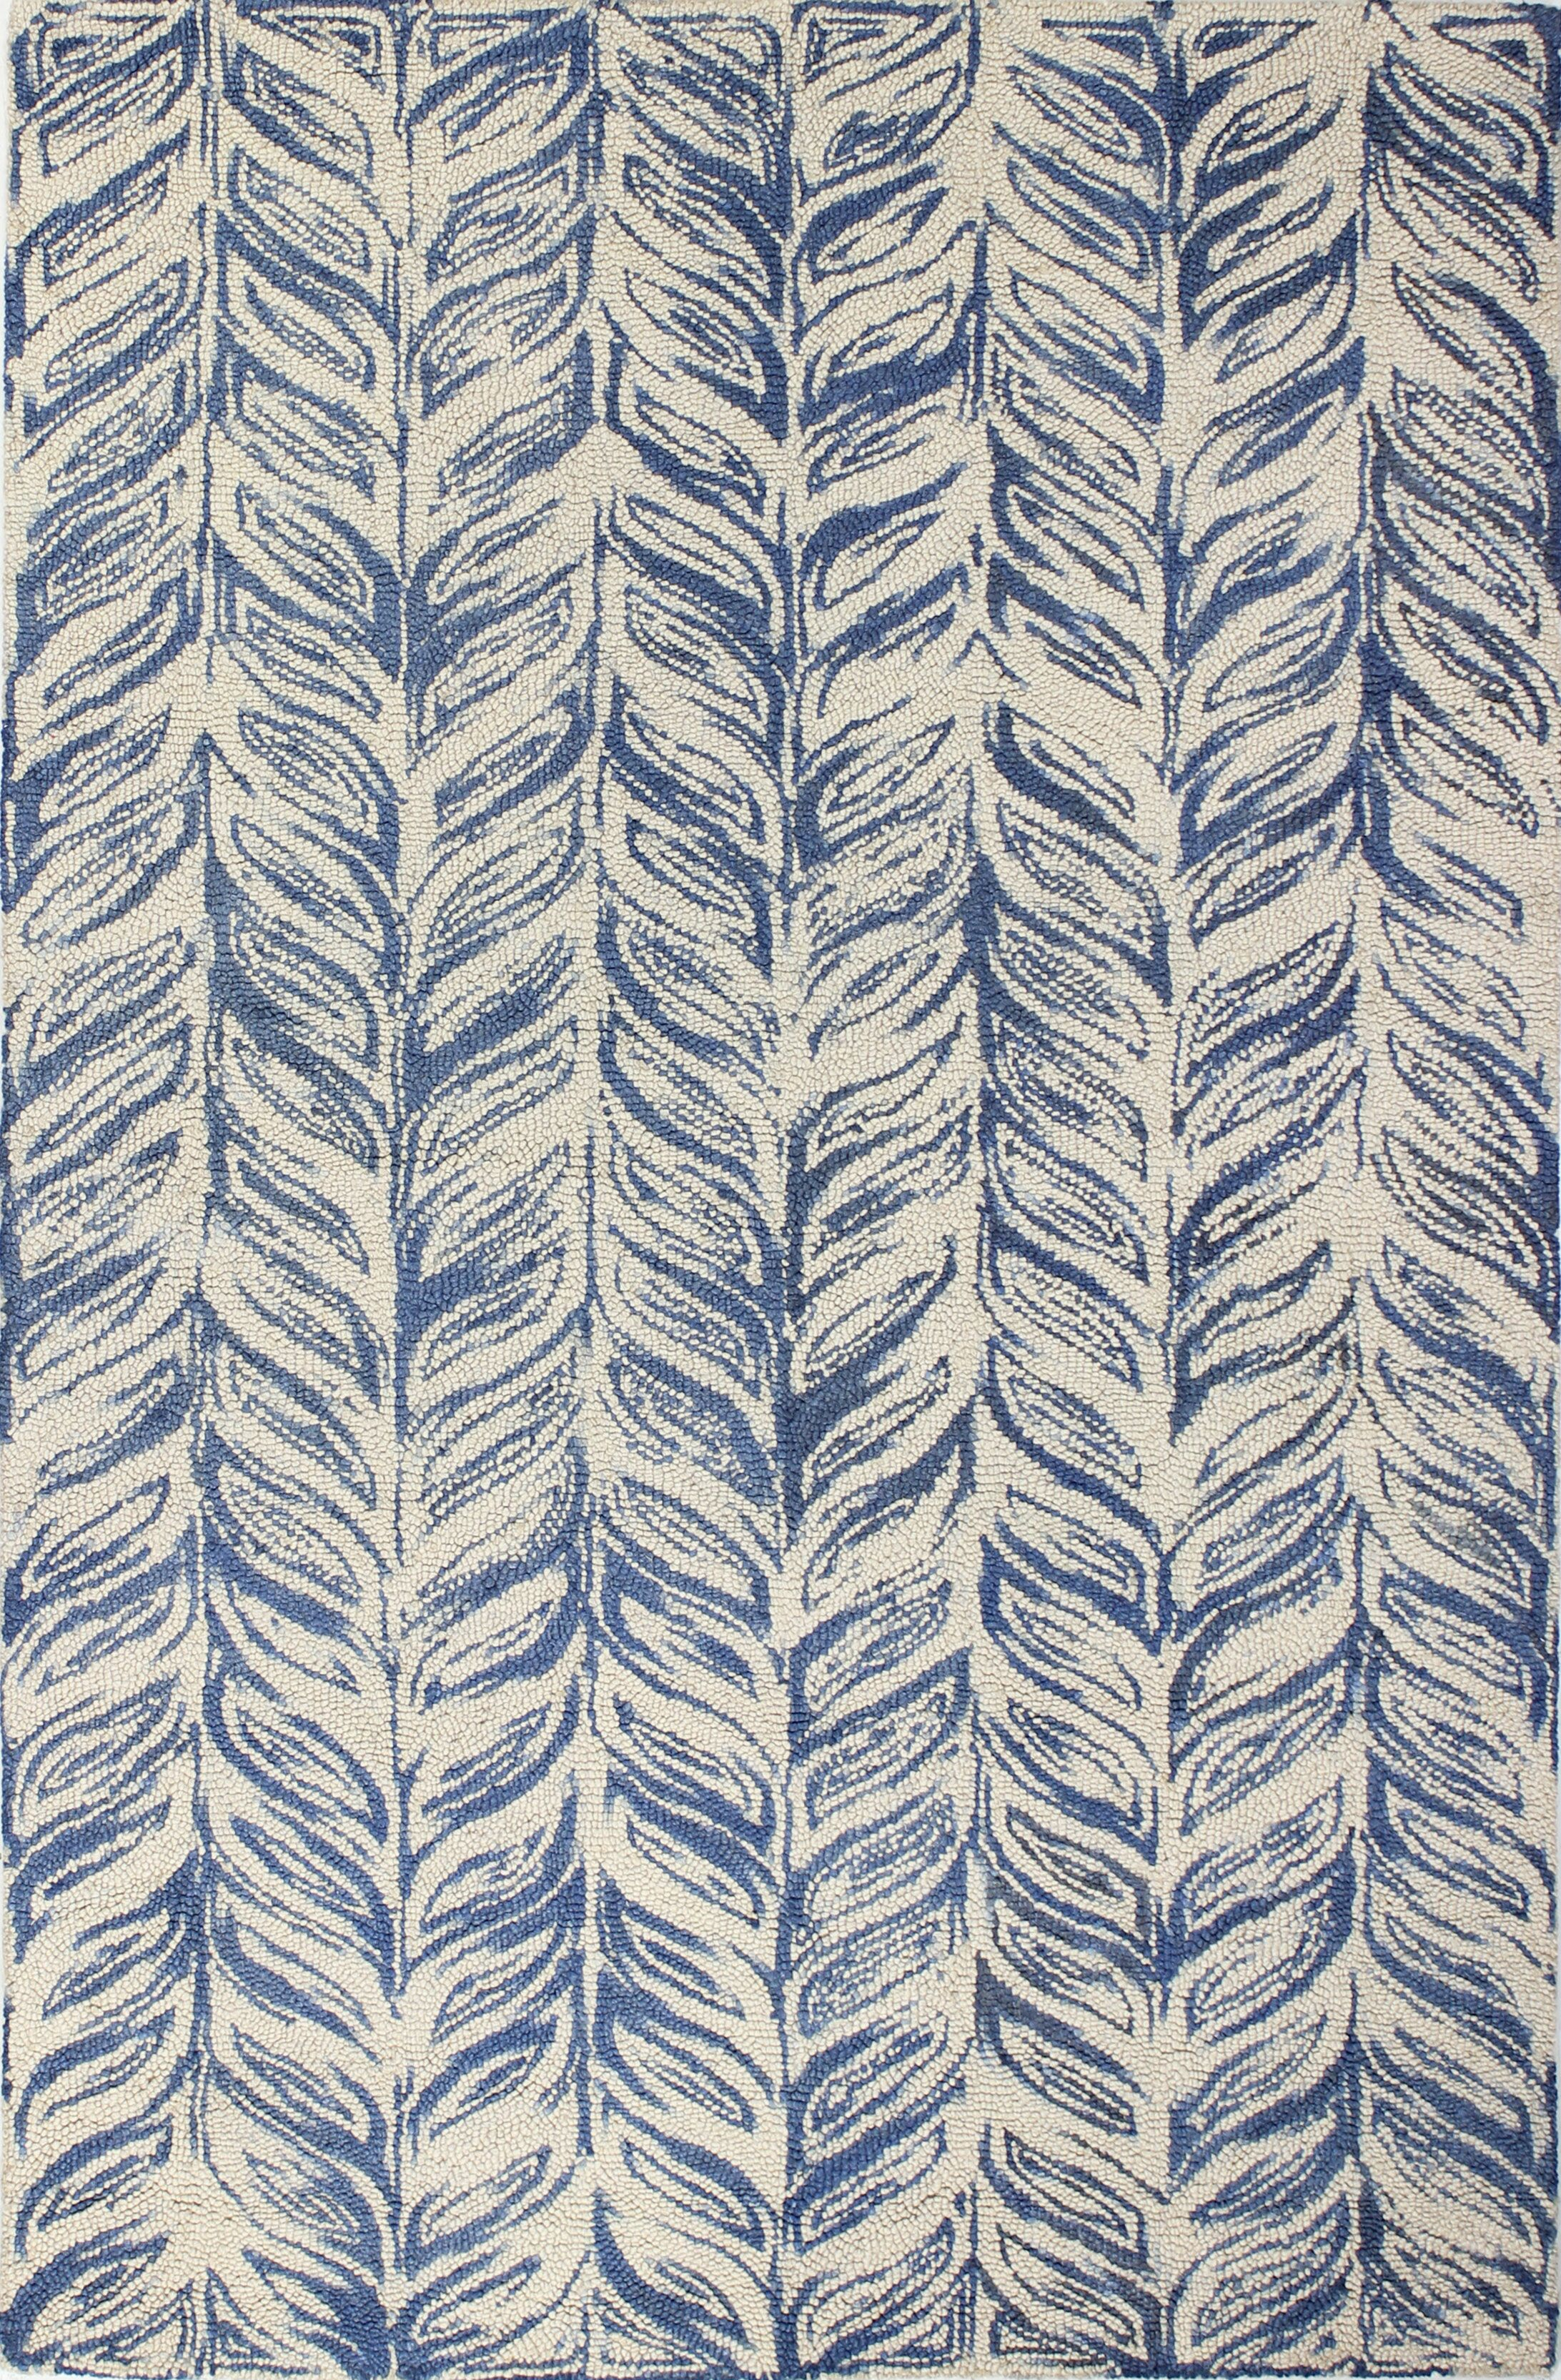 Luckett Hand-Tufted Ivory/Blue Area Rug Rug Size: Rectangle 5' x 7'6